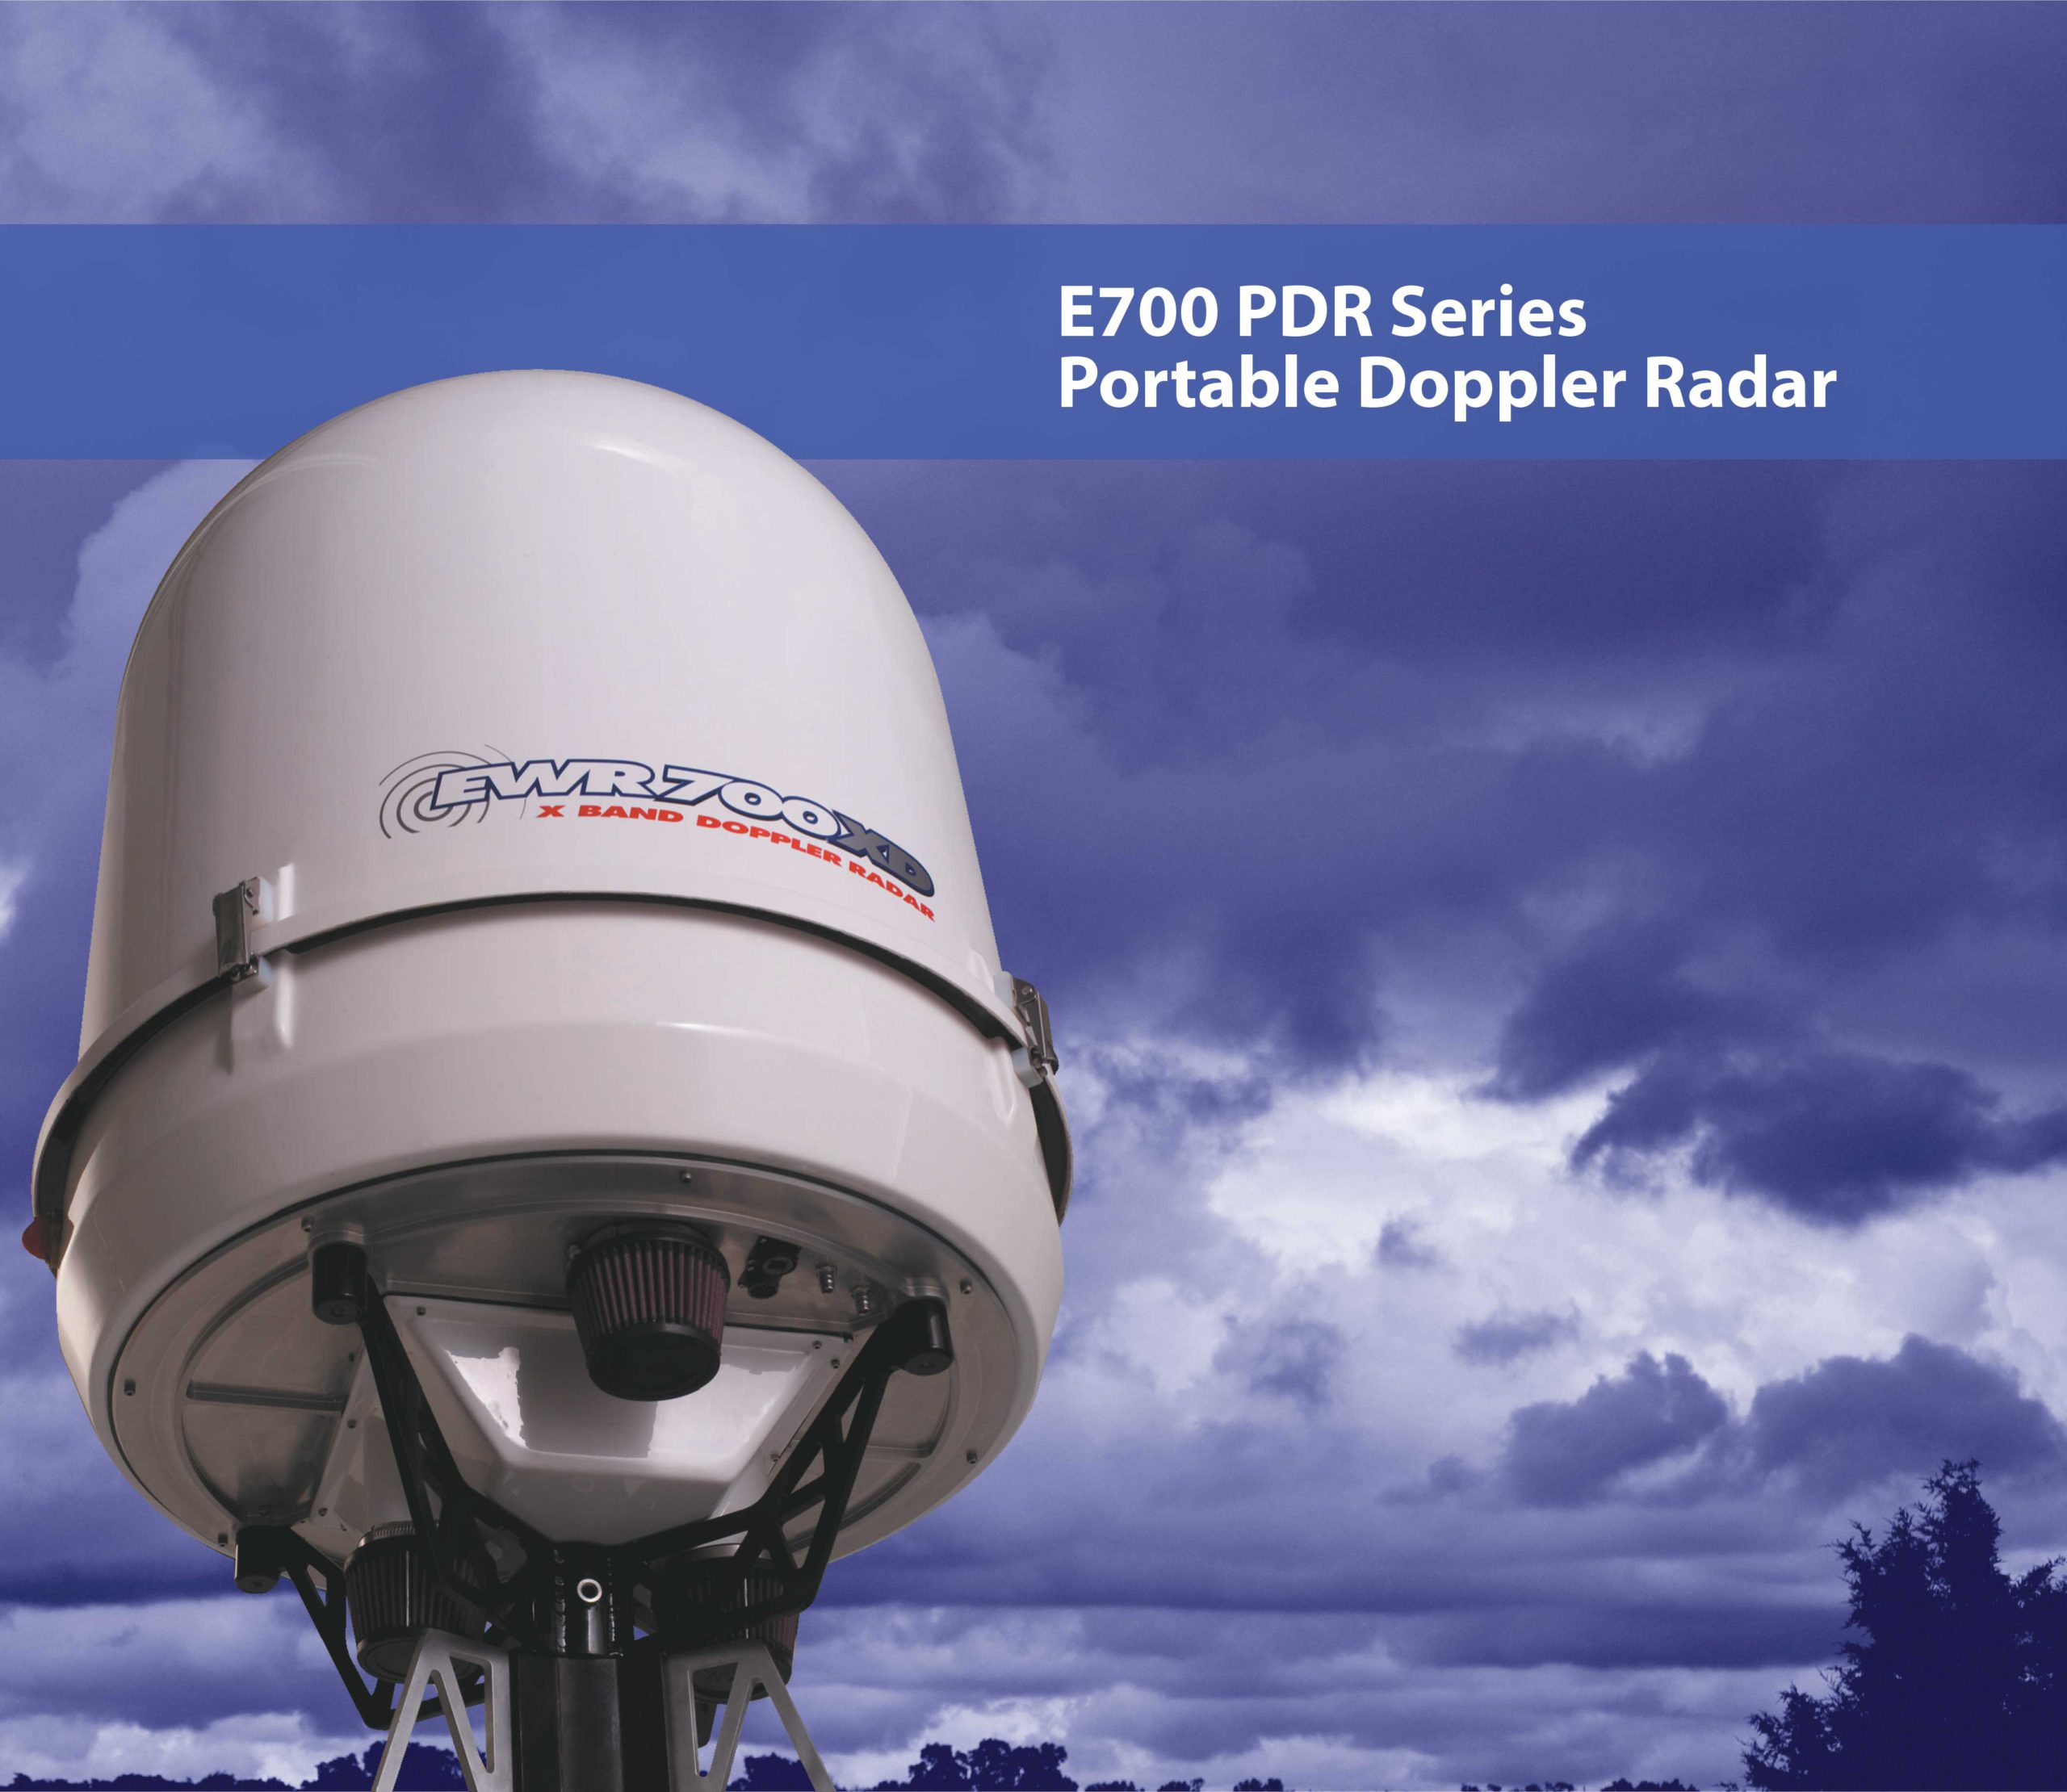 E700 PDR Series Portable Doppler Radar